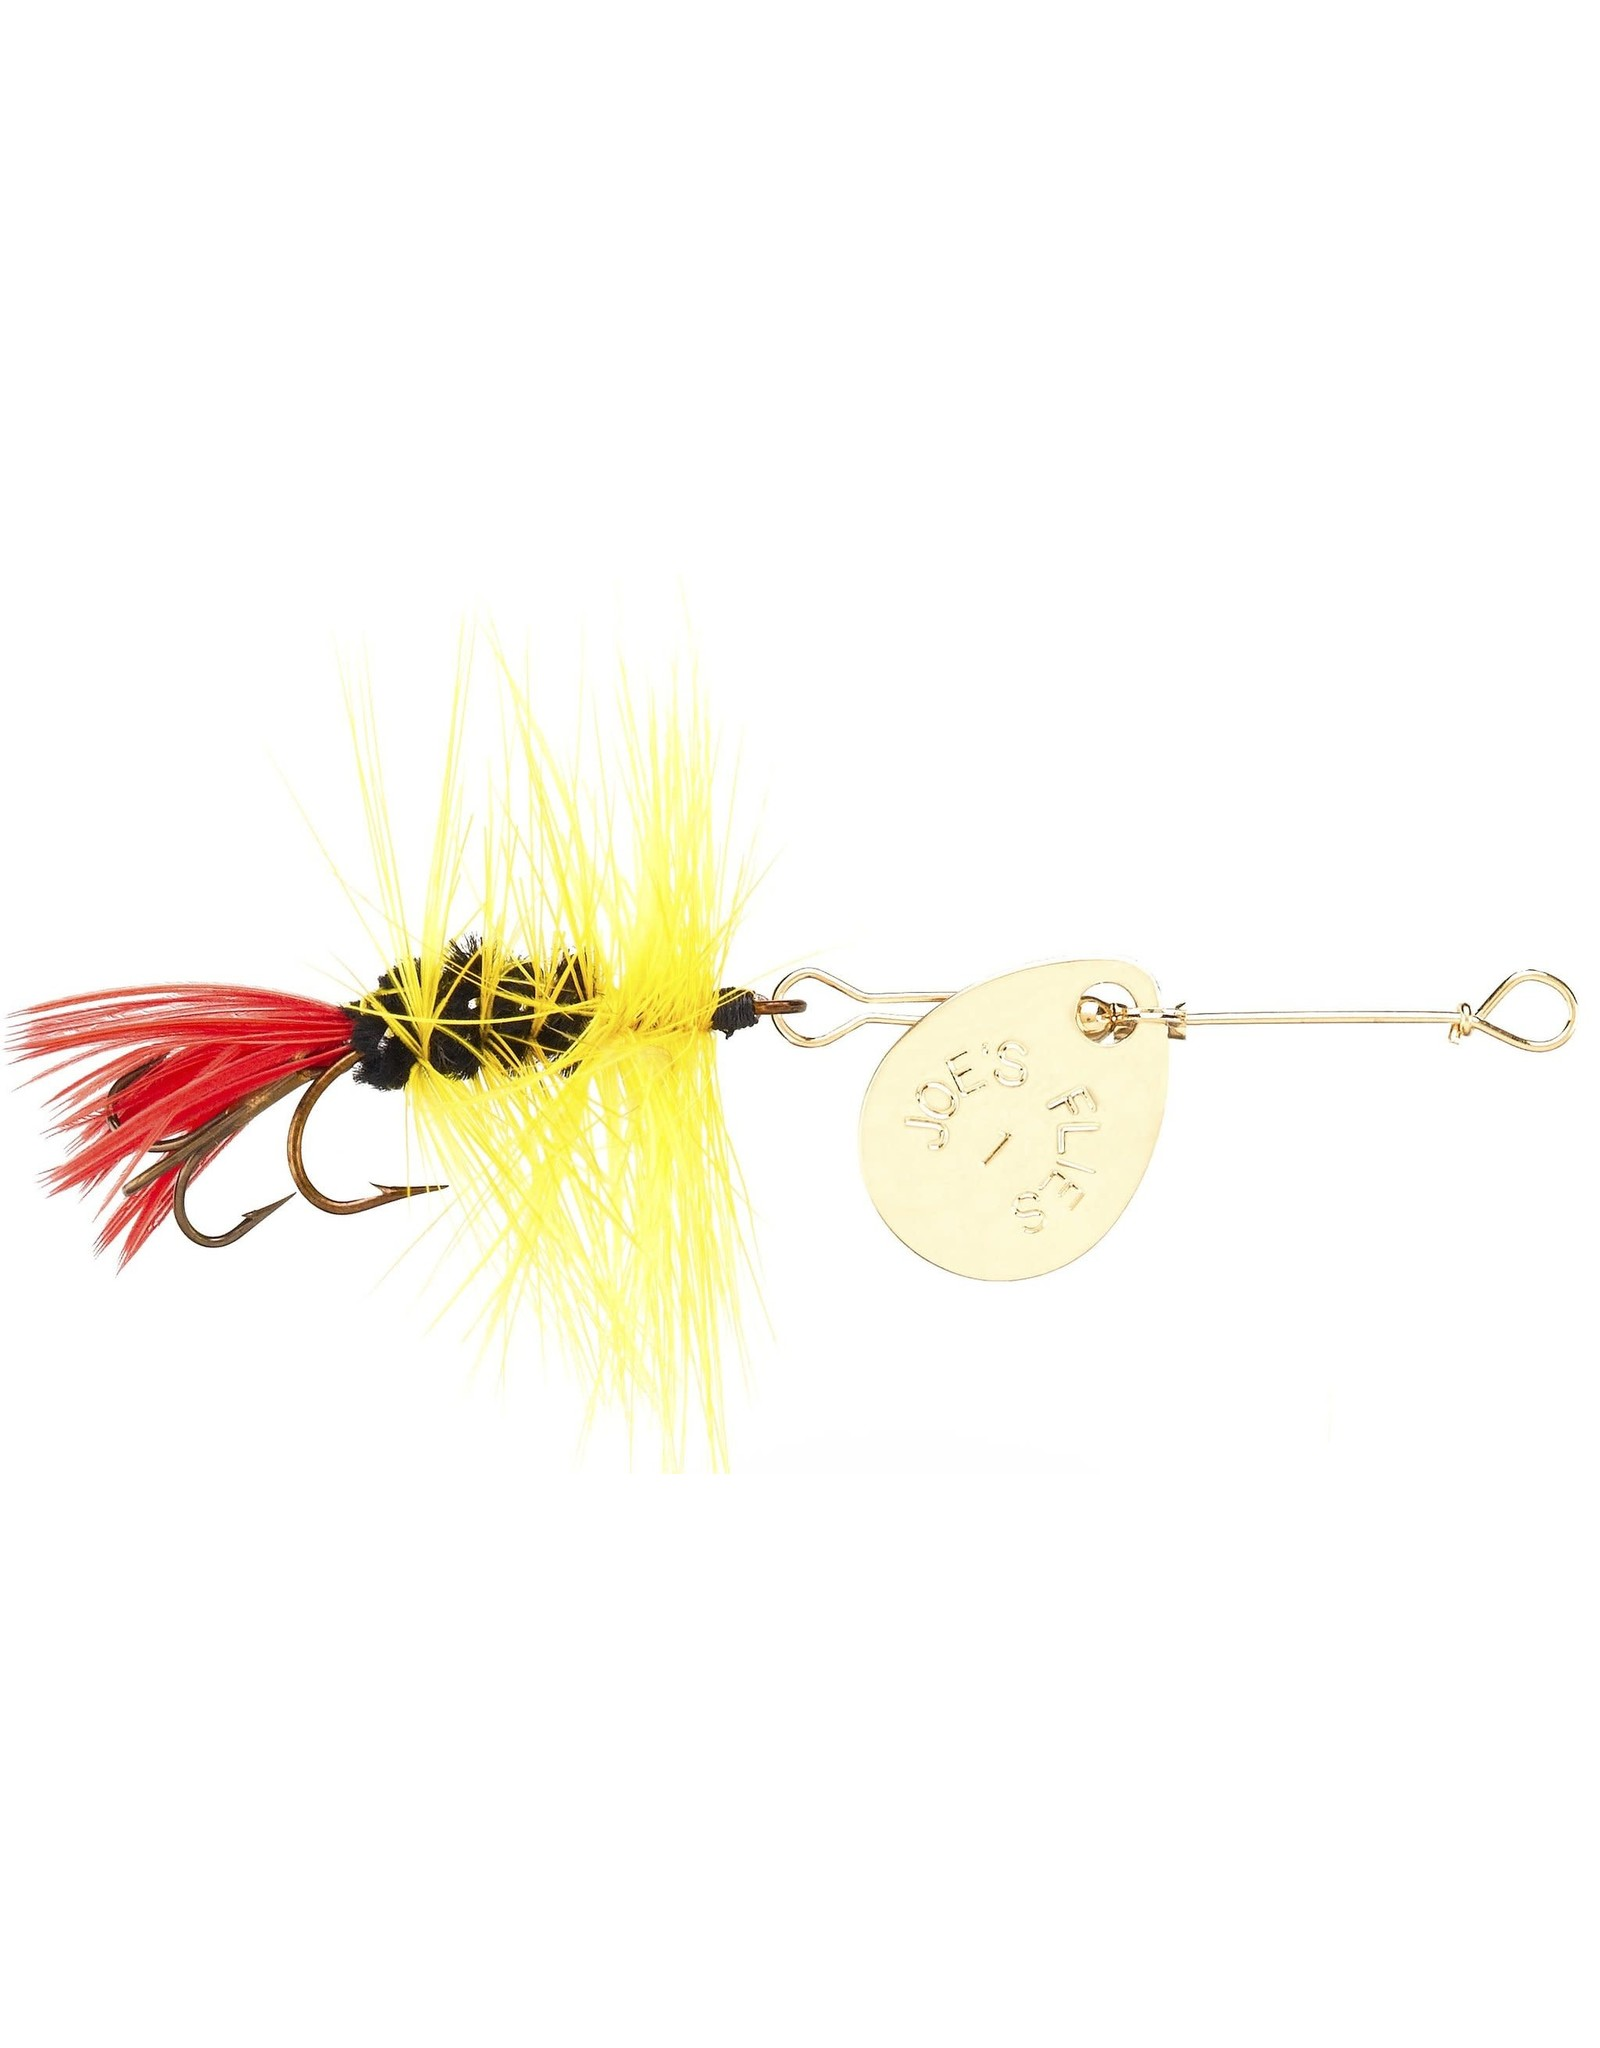 Joe's Flies Joe's Flies Short Striker - Size 8